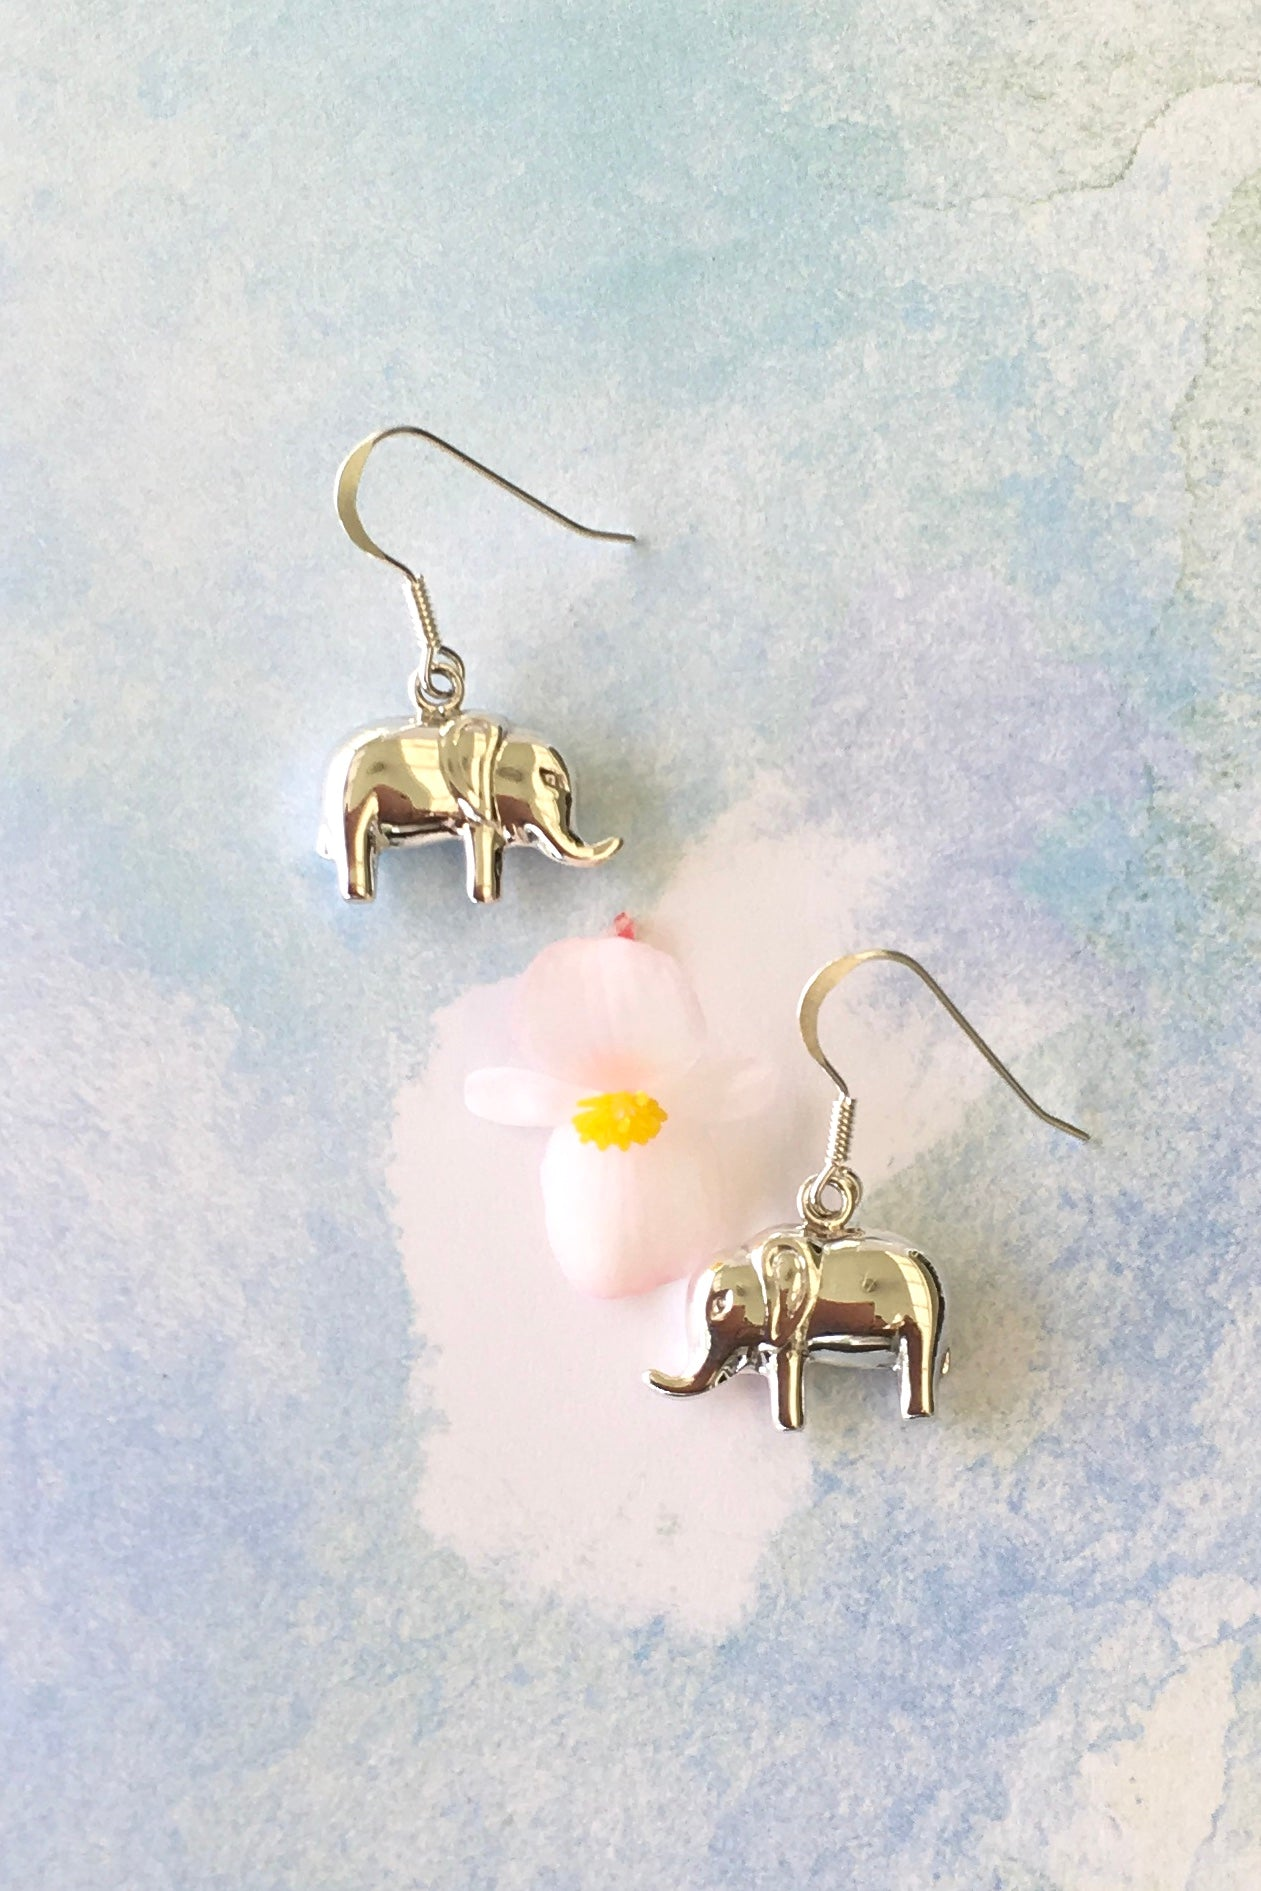 sweet little earrings with a tiny shiny elephant are made in fine solid 925 silver